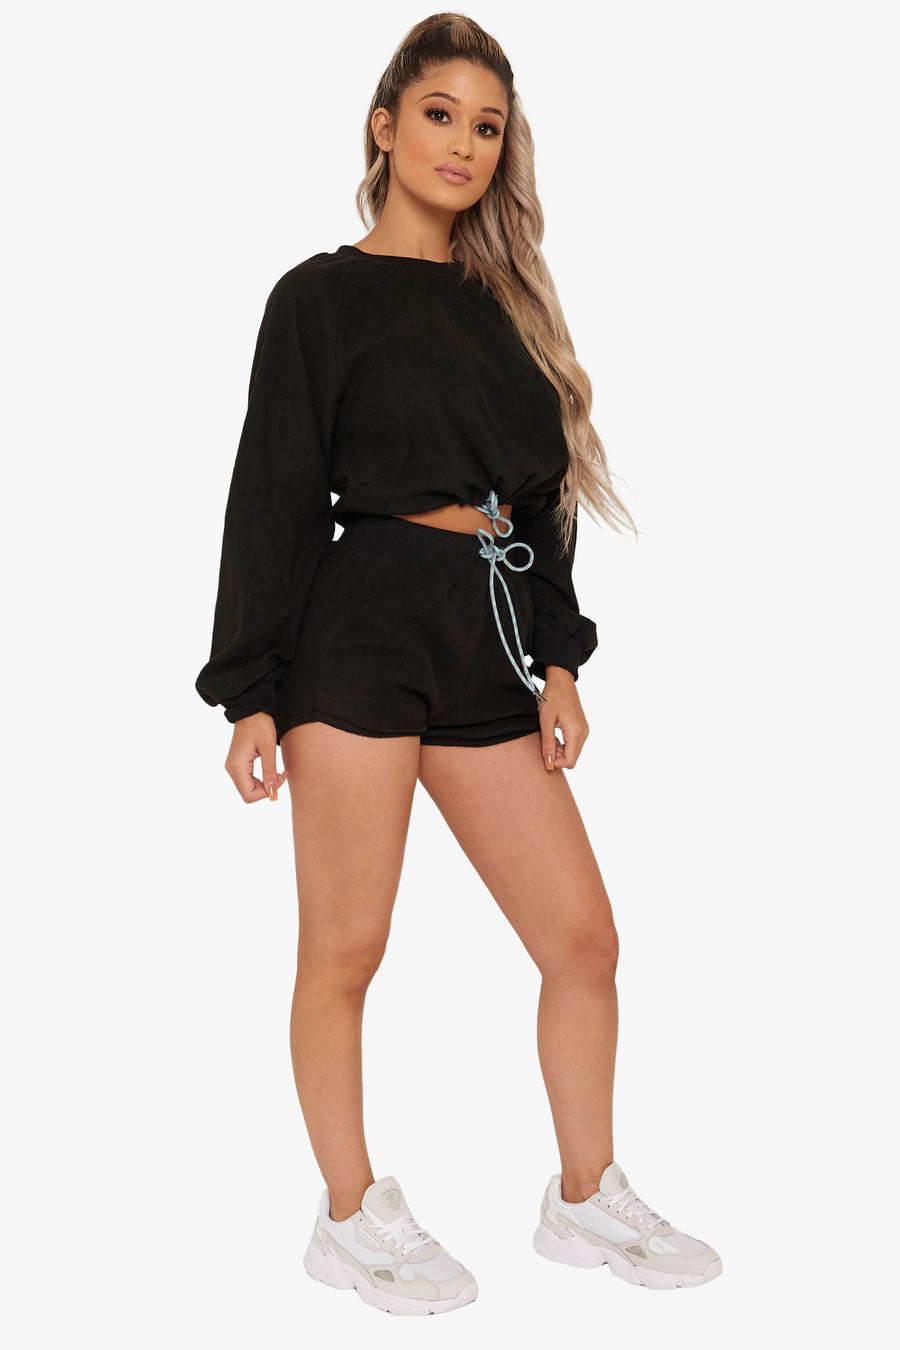 Want You Back Drawstring Shorts